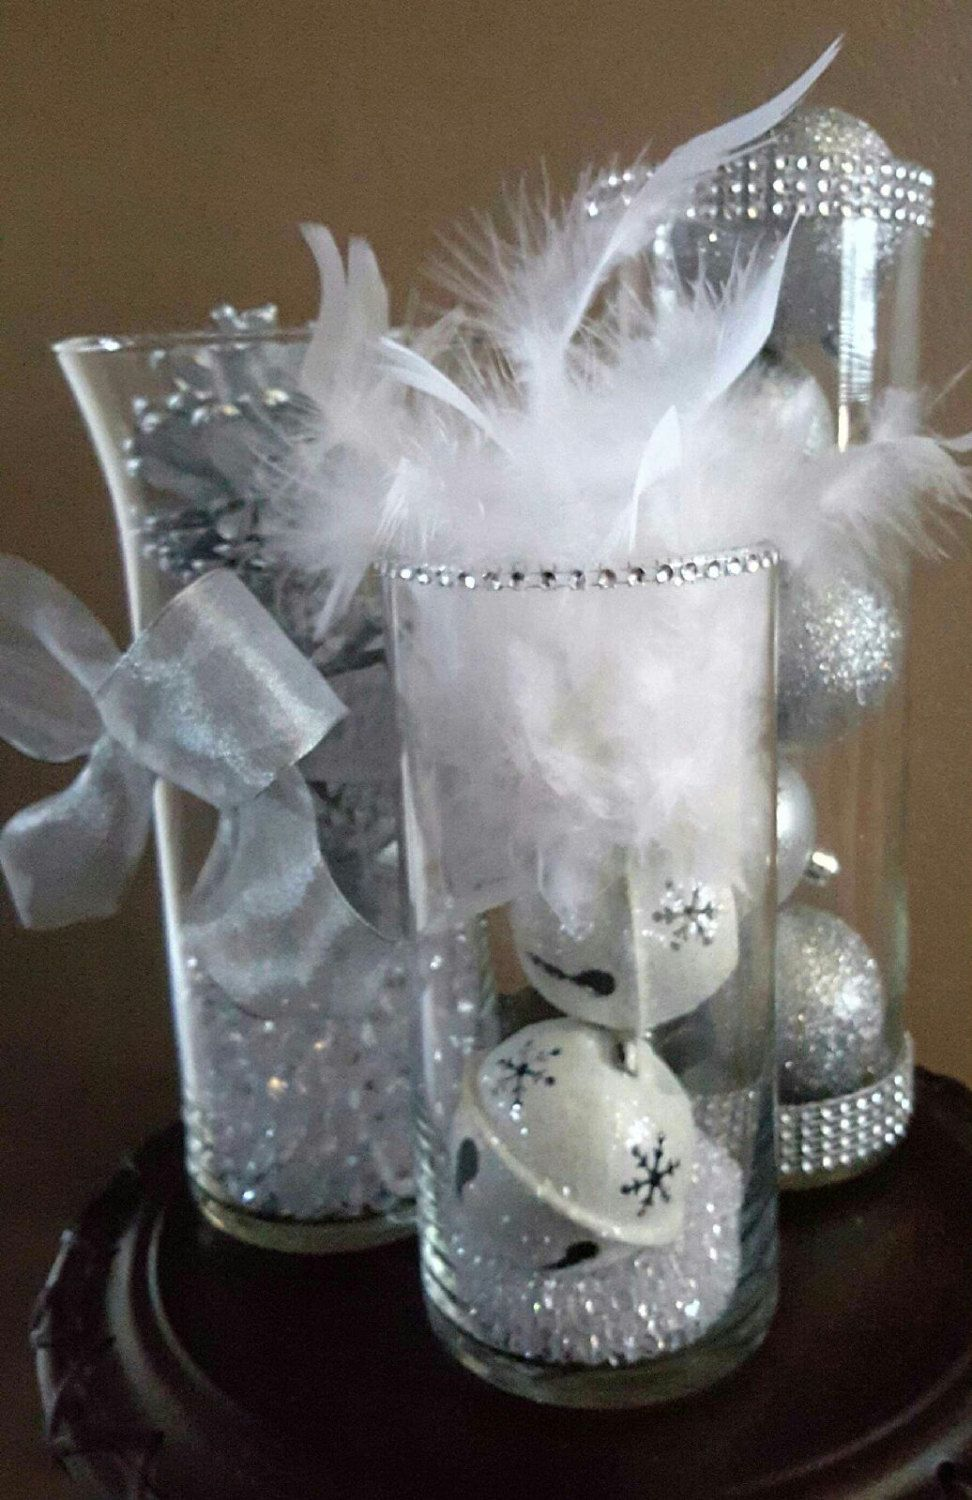 Winter wonderland wedding reception centerpiece decor